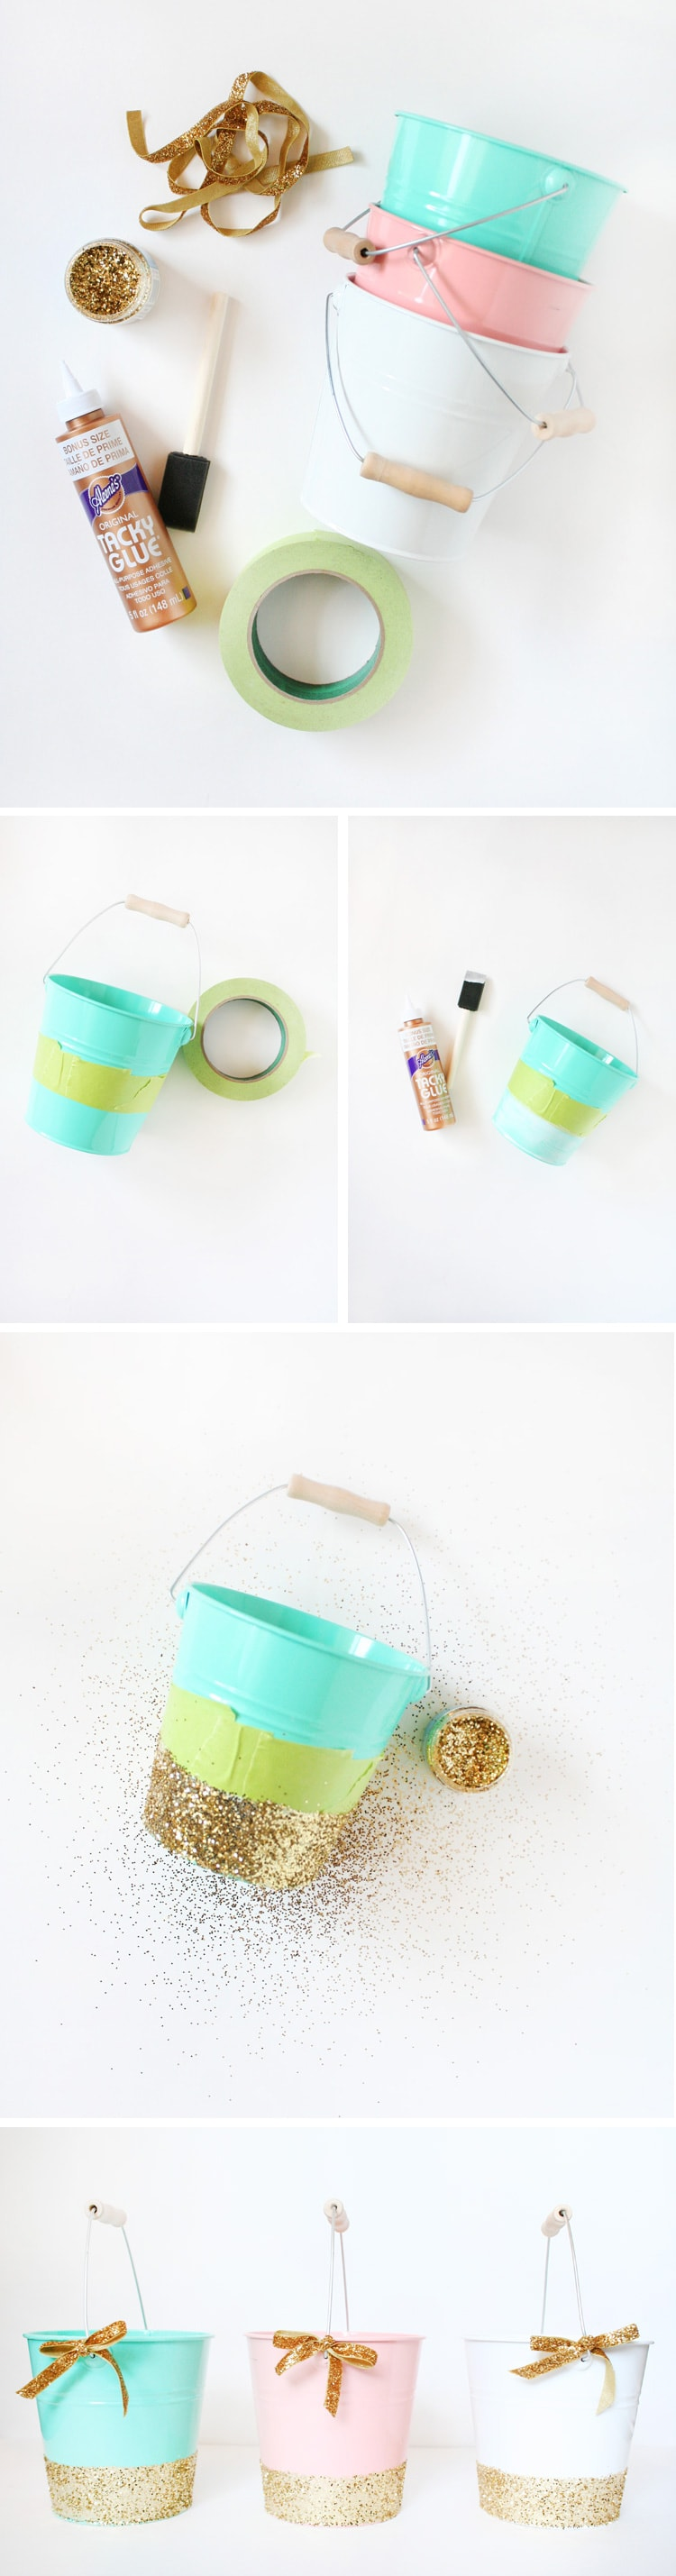 steps DIY Glittered Easter Pails